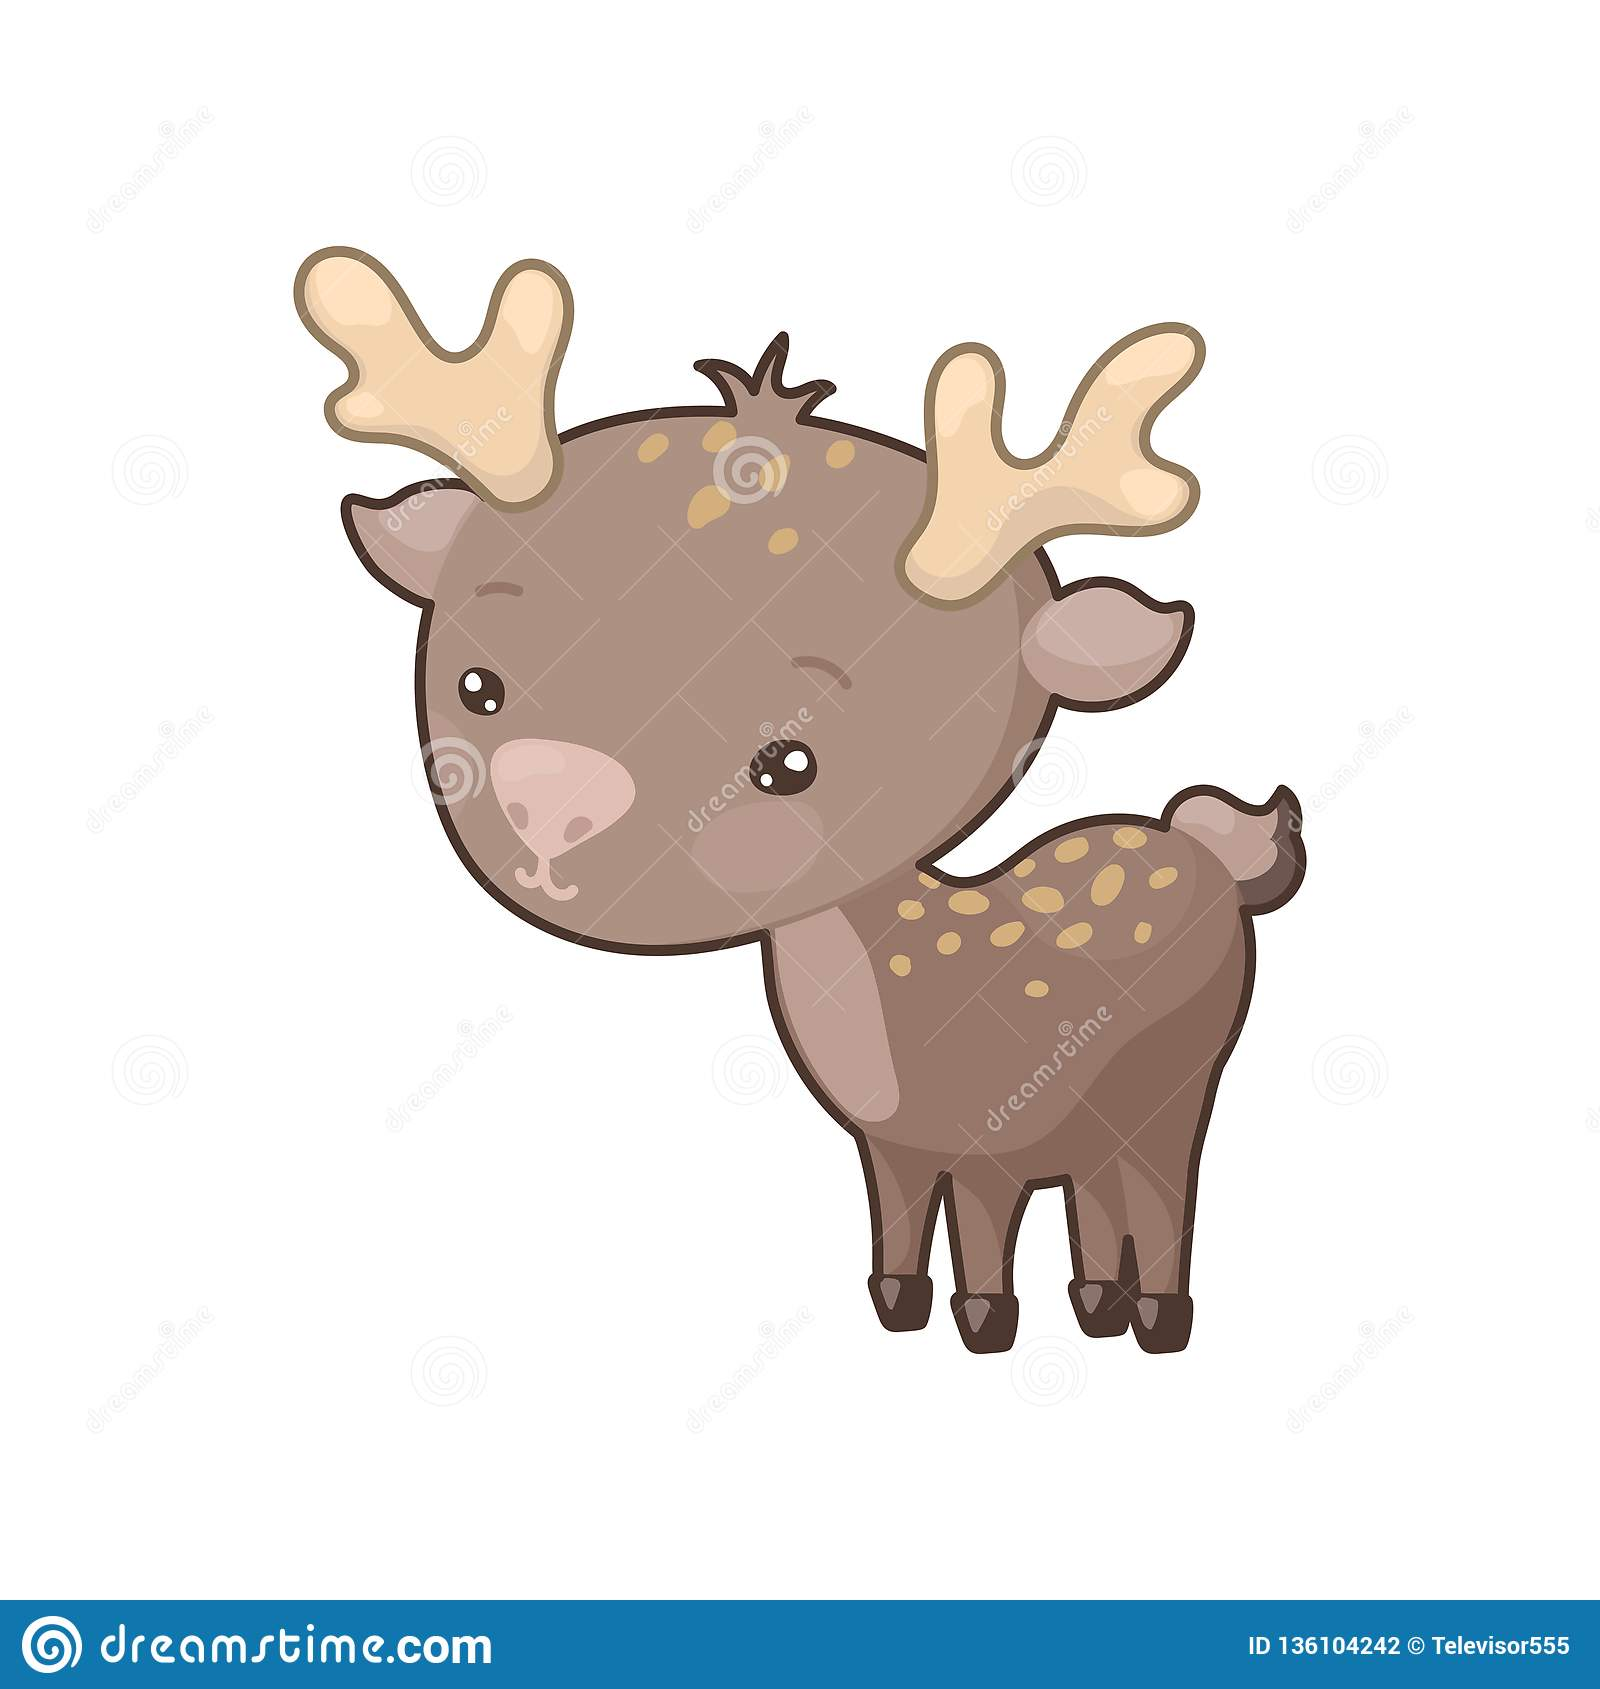 Cute Deer Colorful Icon On White Background. Woodland Animal Clipart.